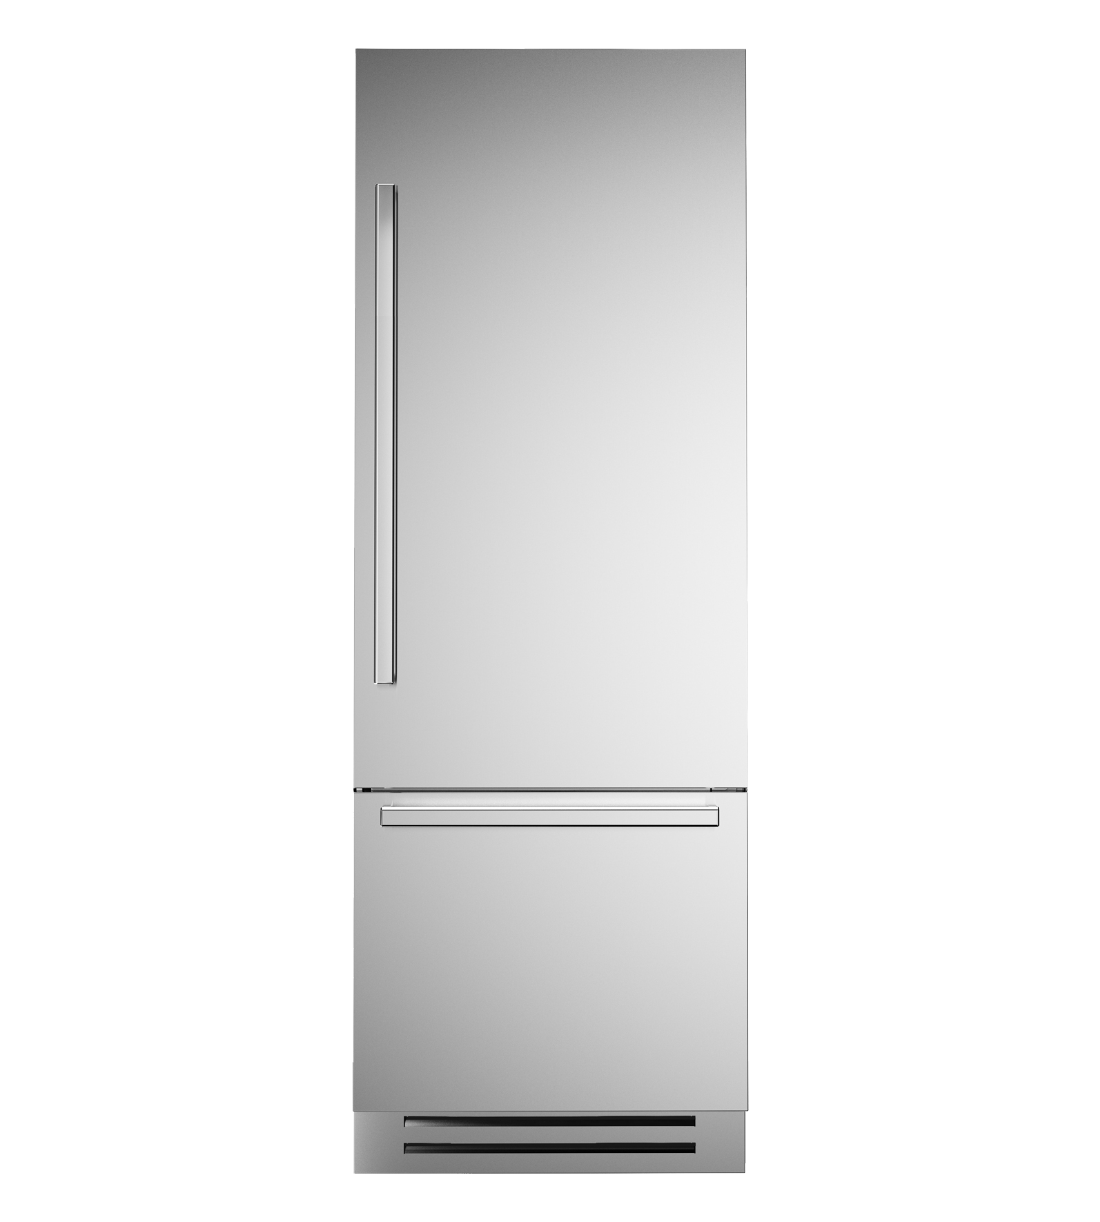 Bertazzoni Fridge 30inch in Stainless Steel color showcased by Corbeil Electro Store